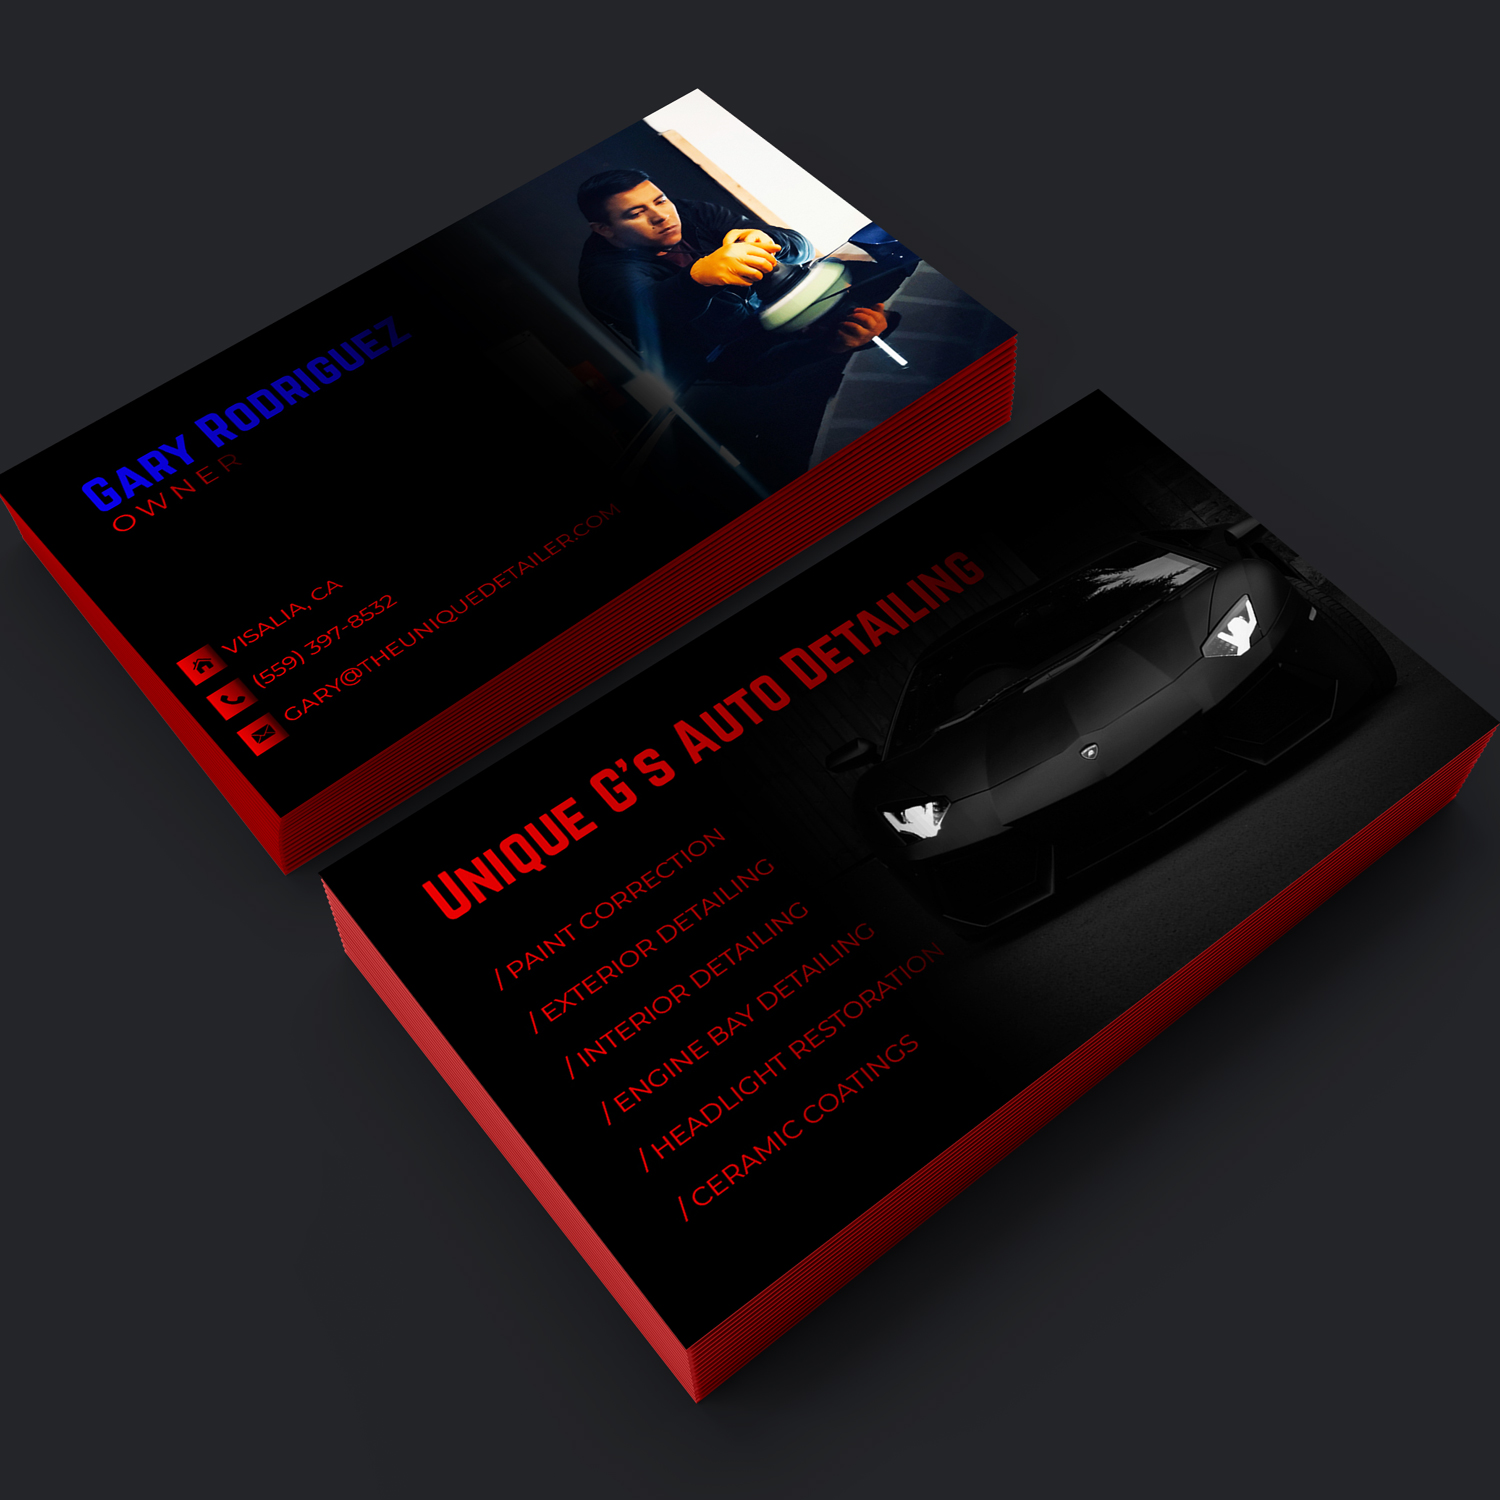 Modern professional automotive business card design for a company business card design by sandymanme for this project design 18079351 reheart Choice Image